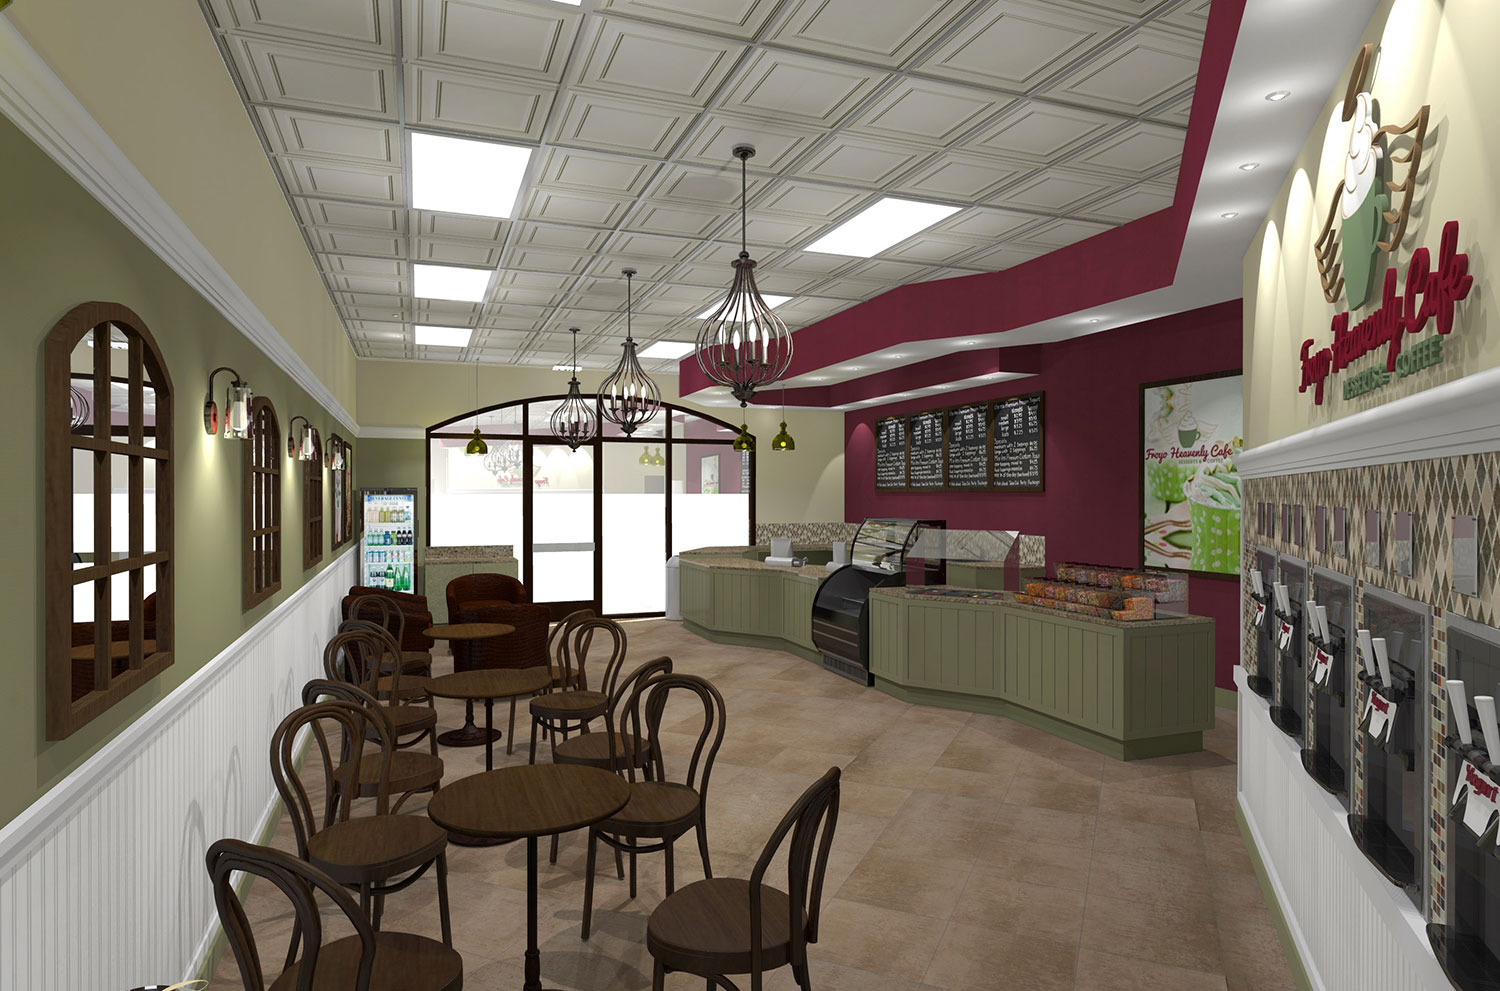 Cafe FroYo Heavenly Interior Design